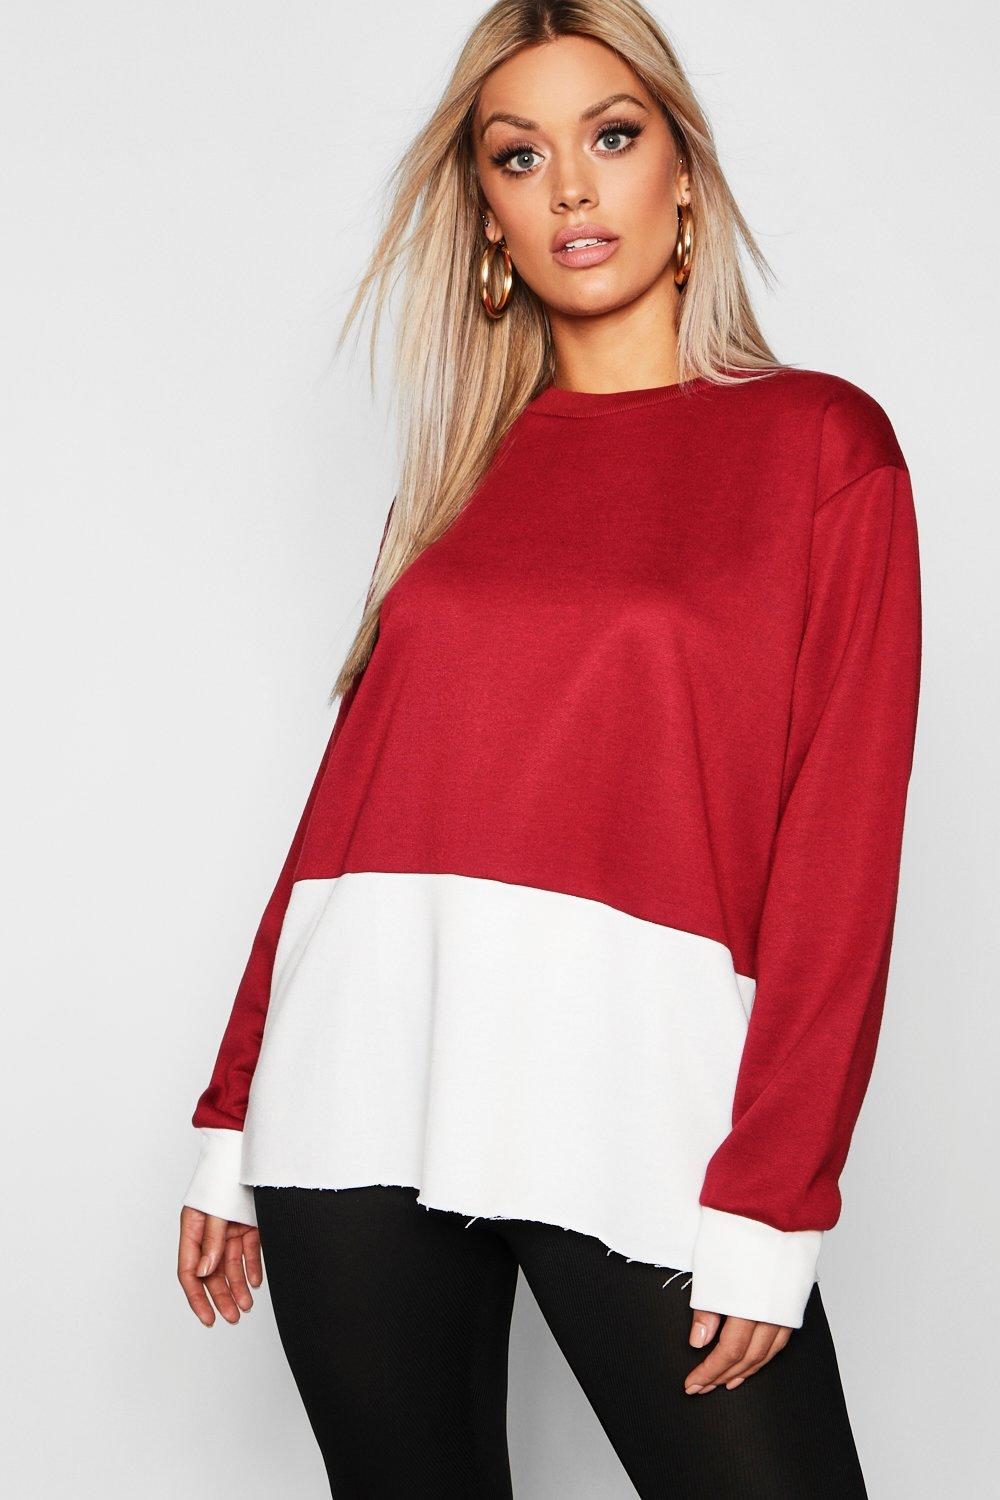 boohoo Womens Plus Colour Block Oversized Jumper - Red - 20, Red